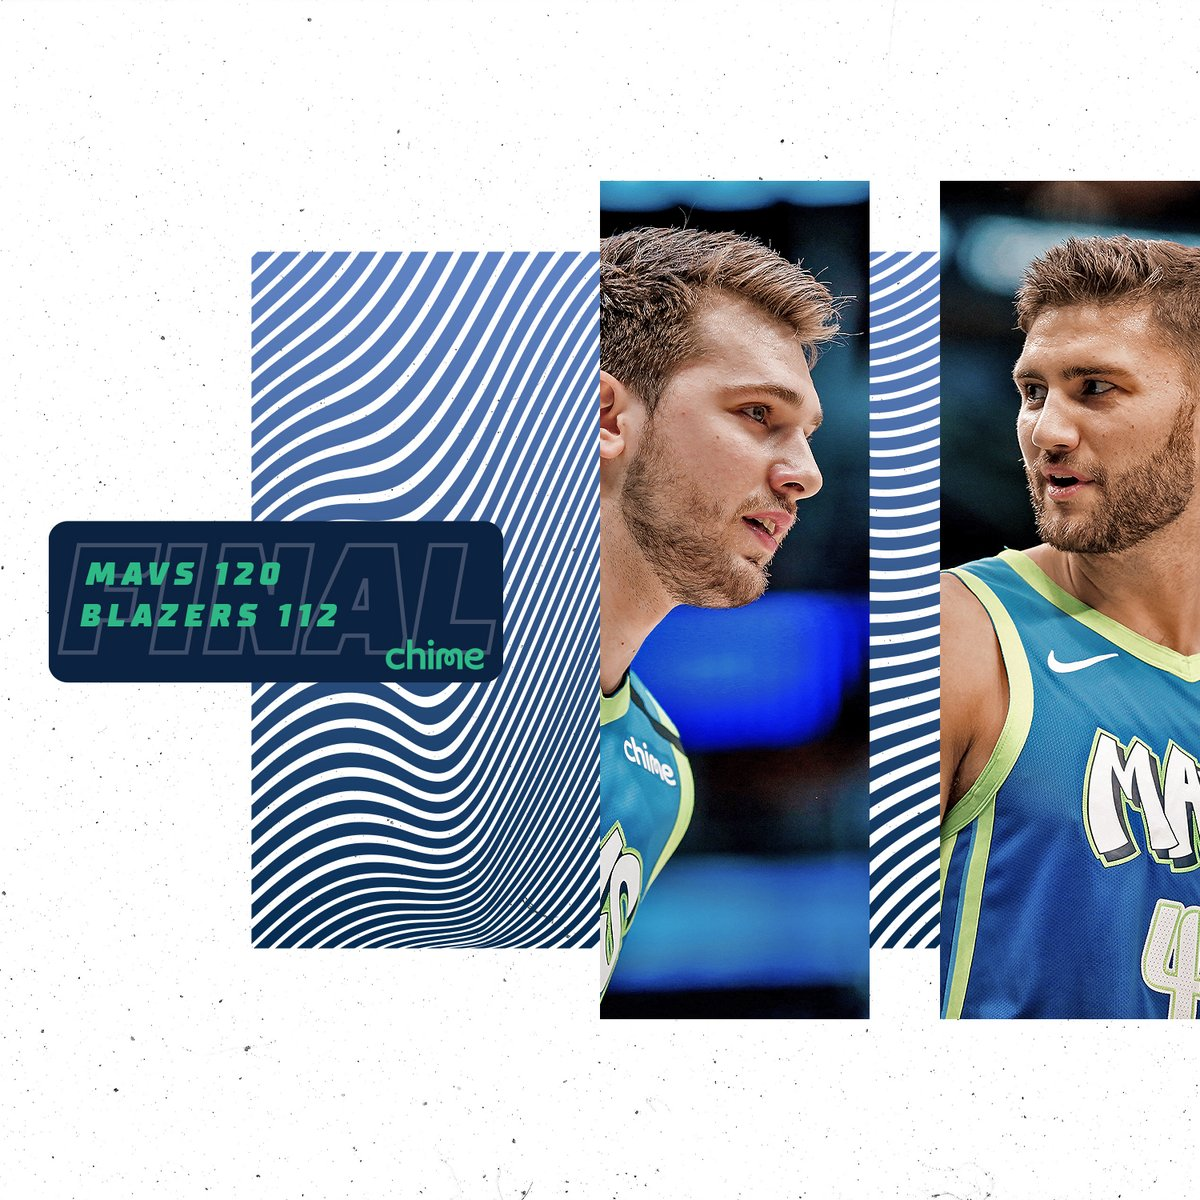 FINAL: Mavs win! @luka7doncic led all scorers with 35, @T_HardJR poured in 29, and @sdotcurry and @jalenbrunson1 both scored double-digits off the bench!  @Chime | #MFFL